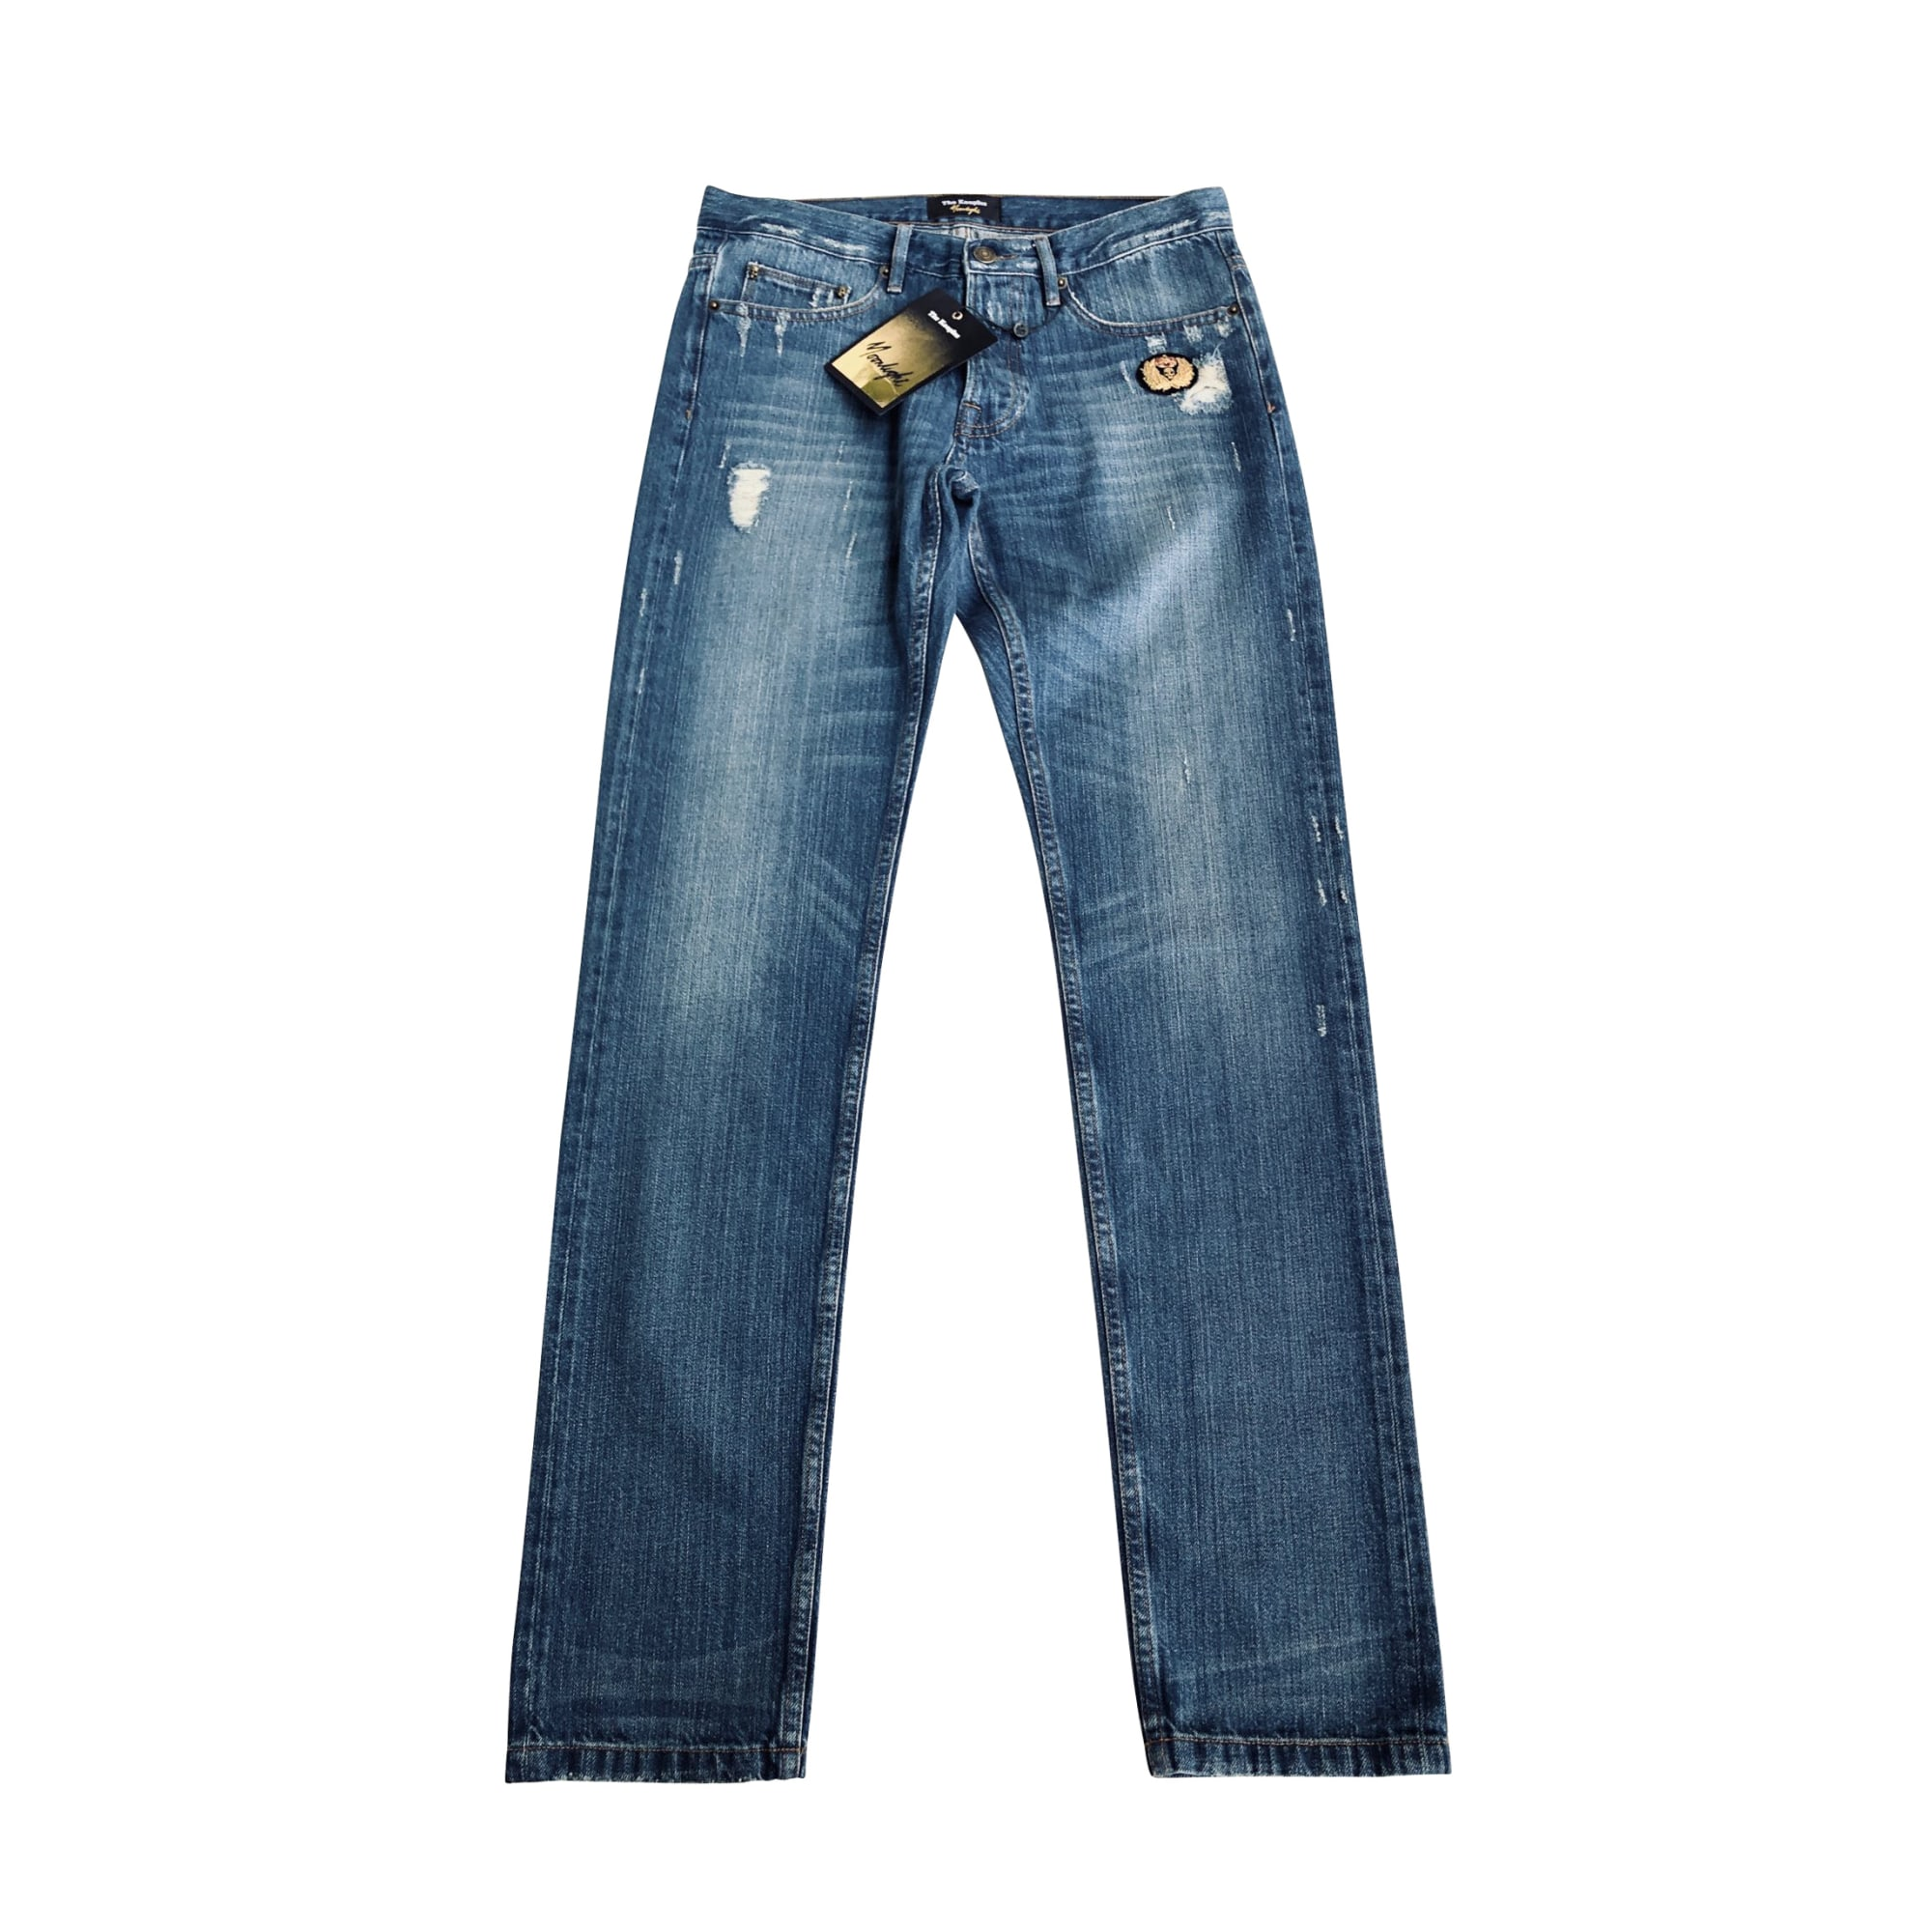 Straight Leg Jeans THE KOOPLES Blue, navy, turquoise